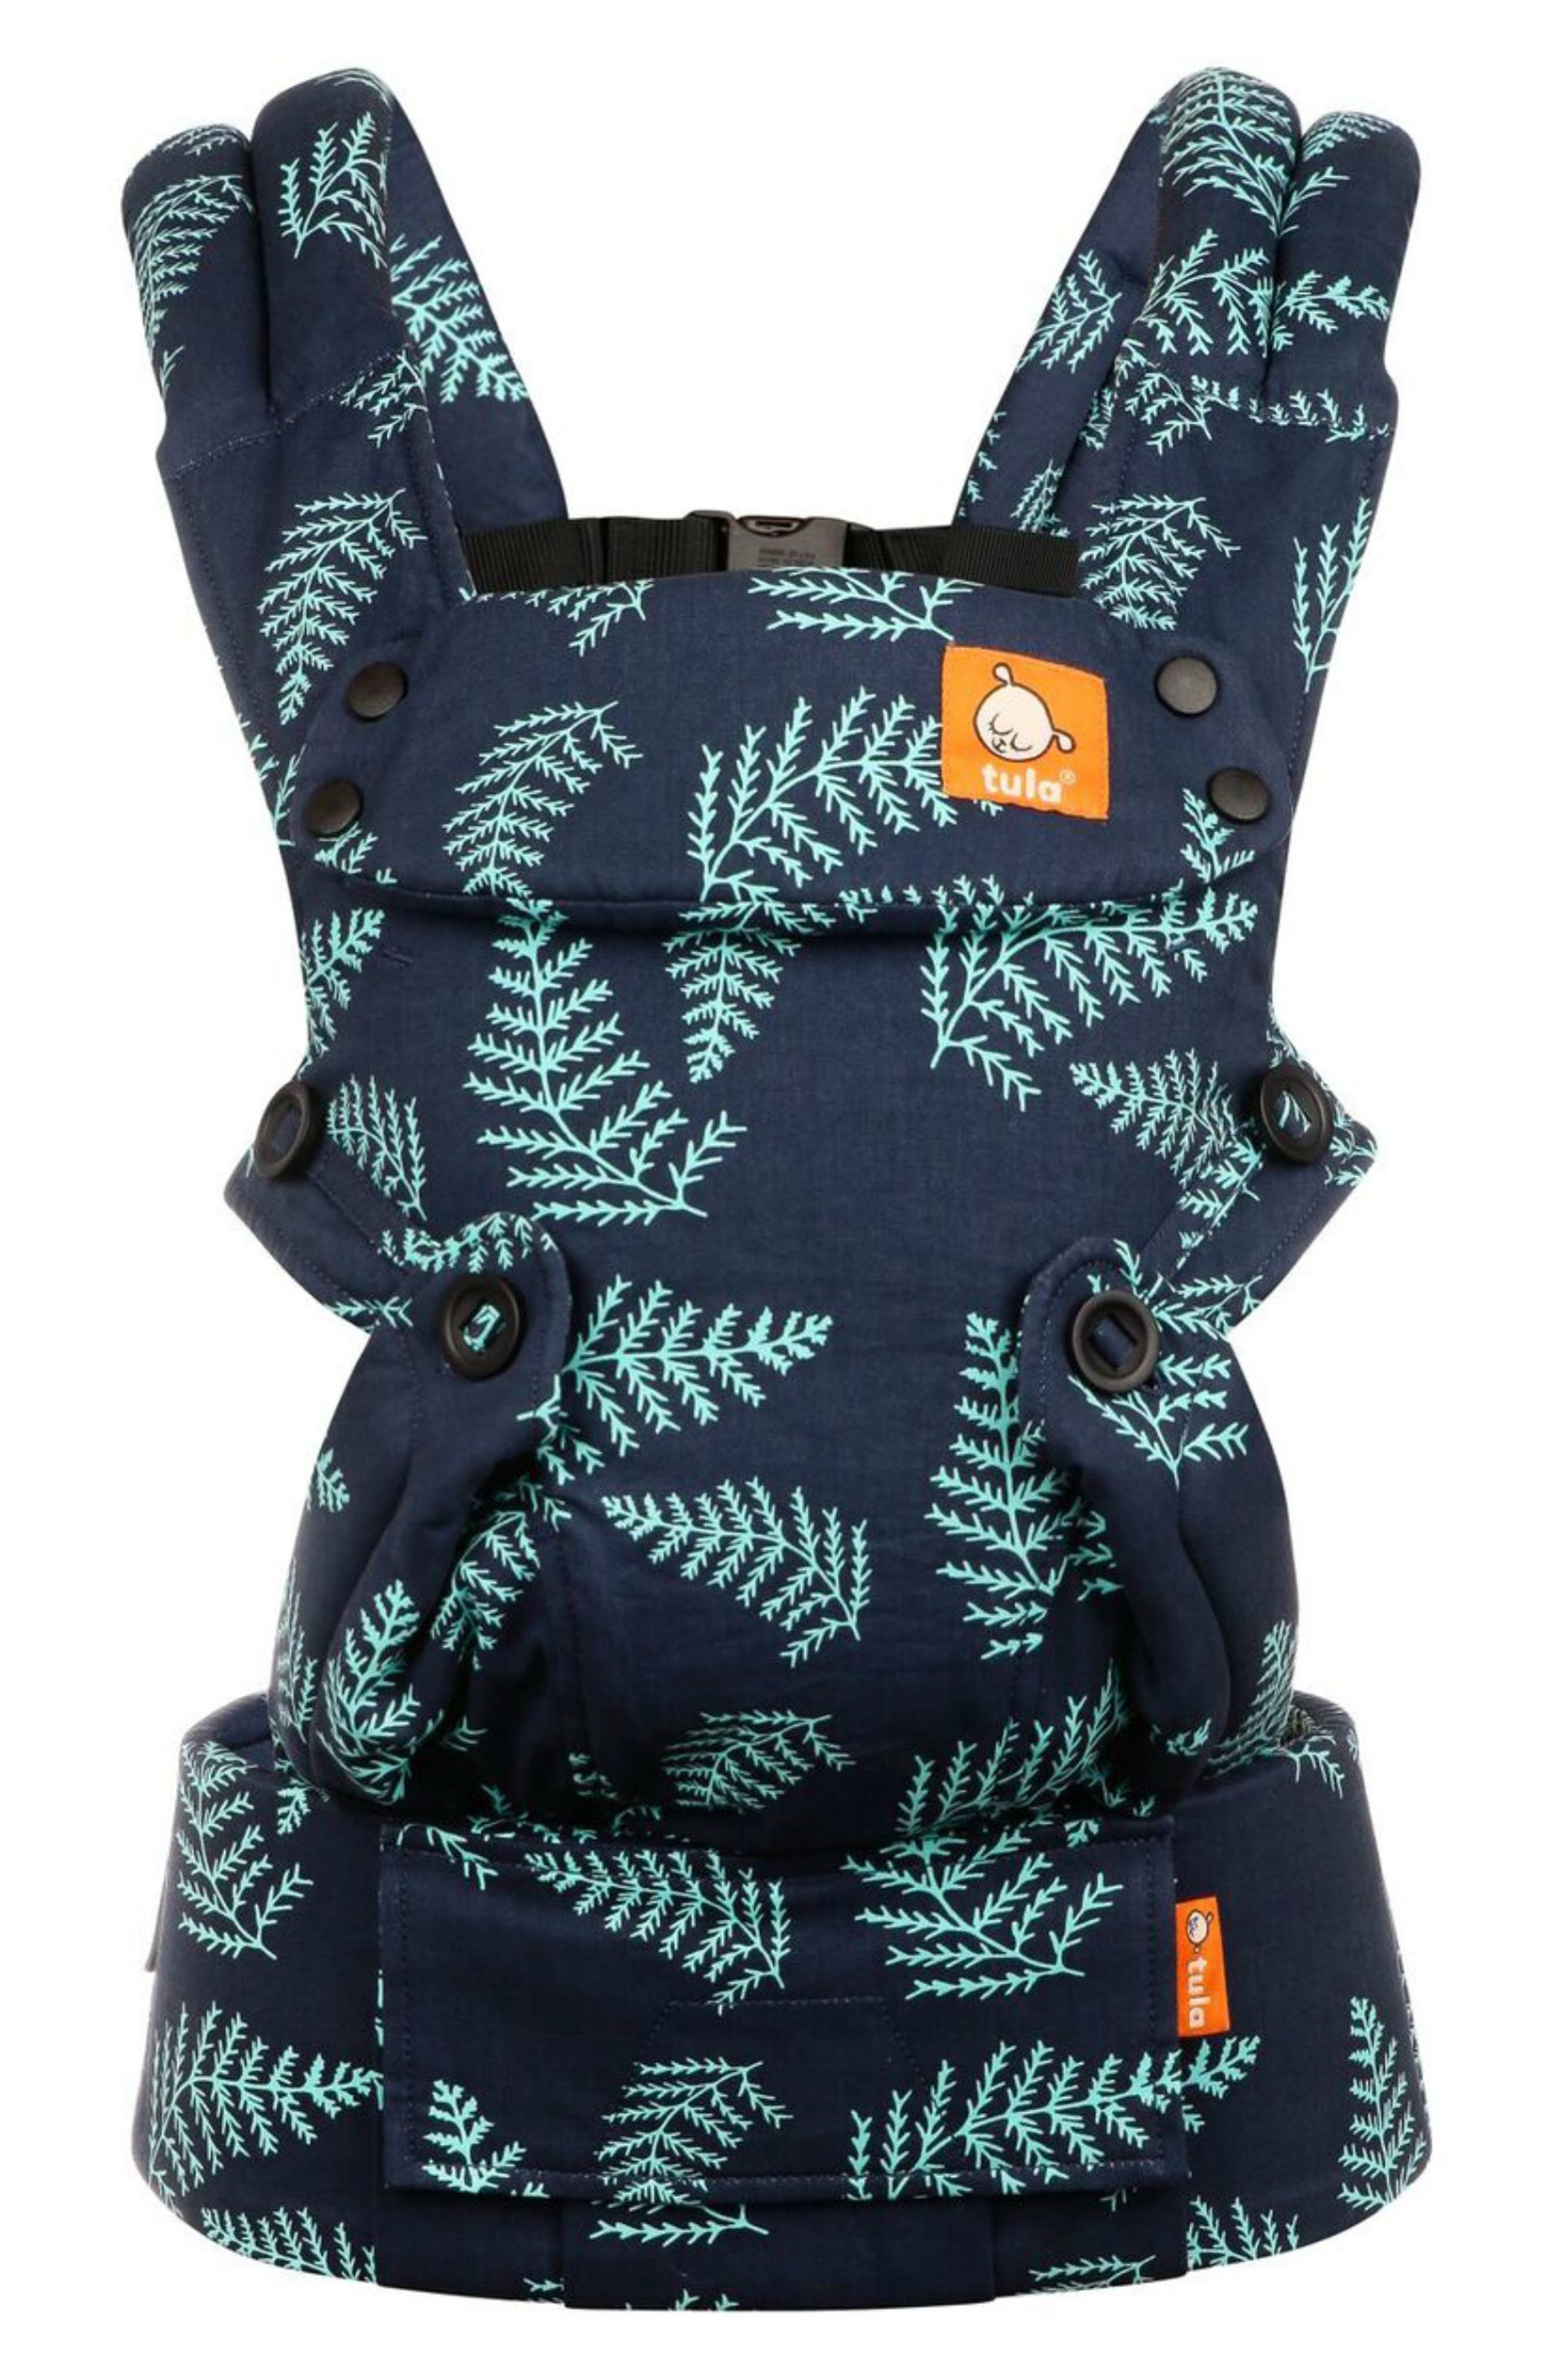 Infant Baby Tula Explore Frontback Baby Carrier Size One Size  Blue